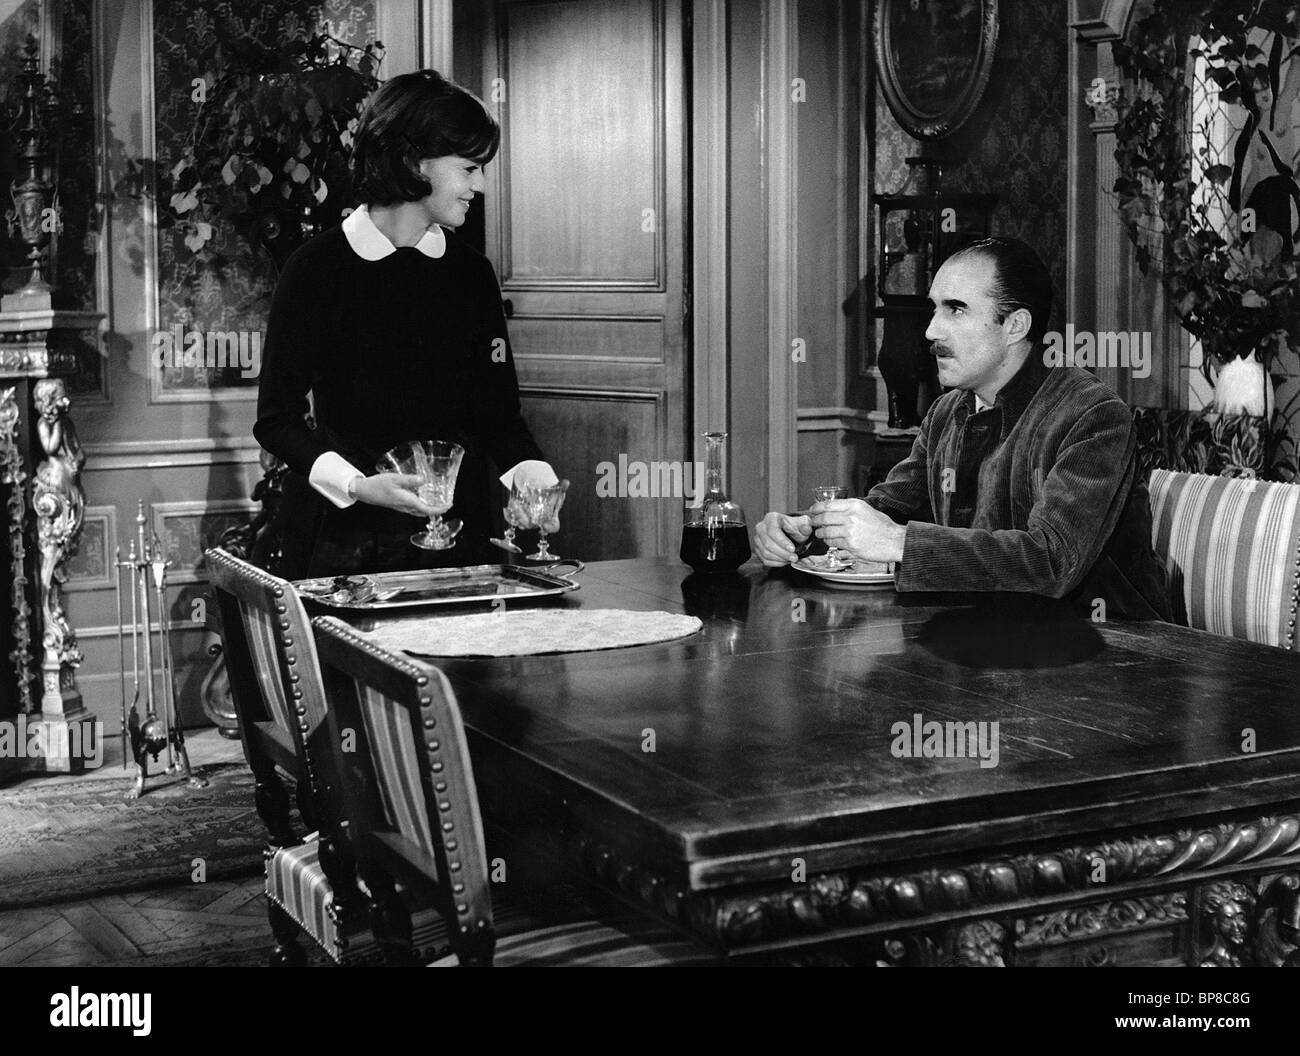 JEANNE MOREAU, MICHEL PICCOLI, THE DIARY OF A CHAMBERMAID, 1964 - Stock Image